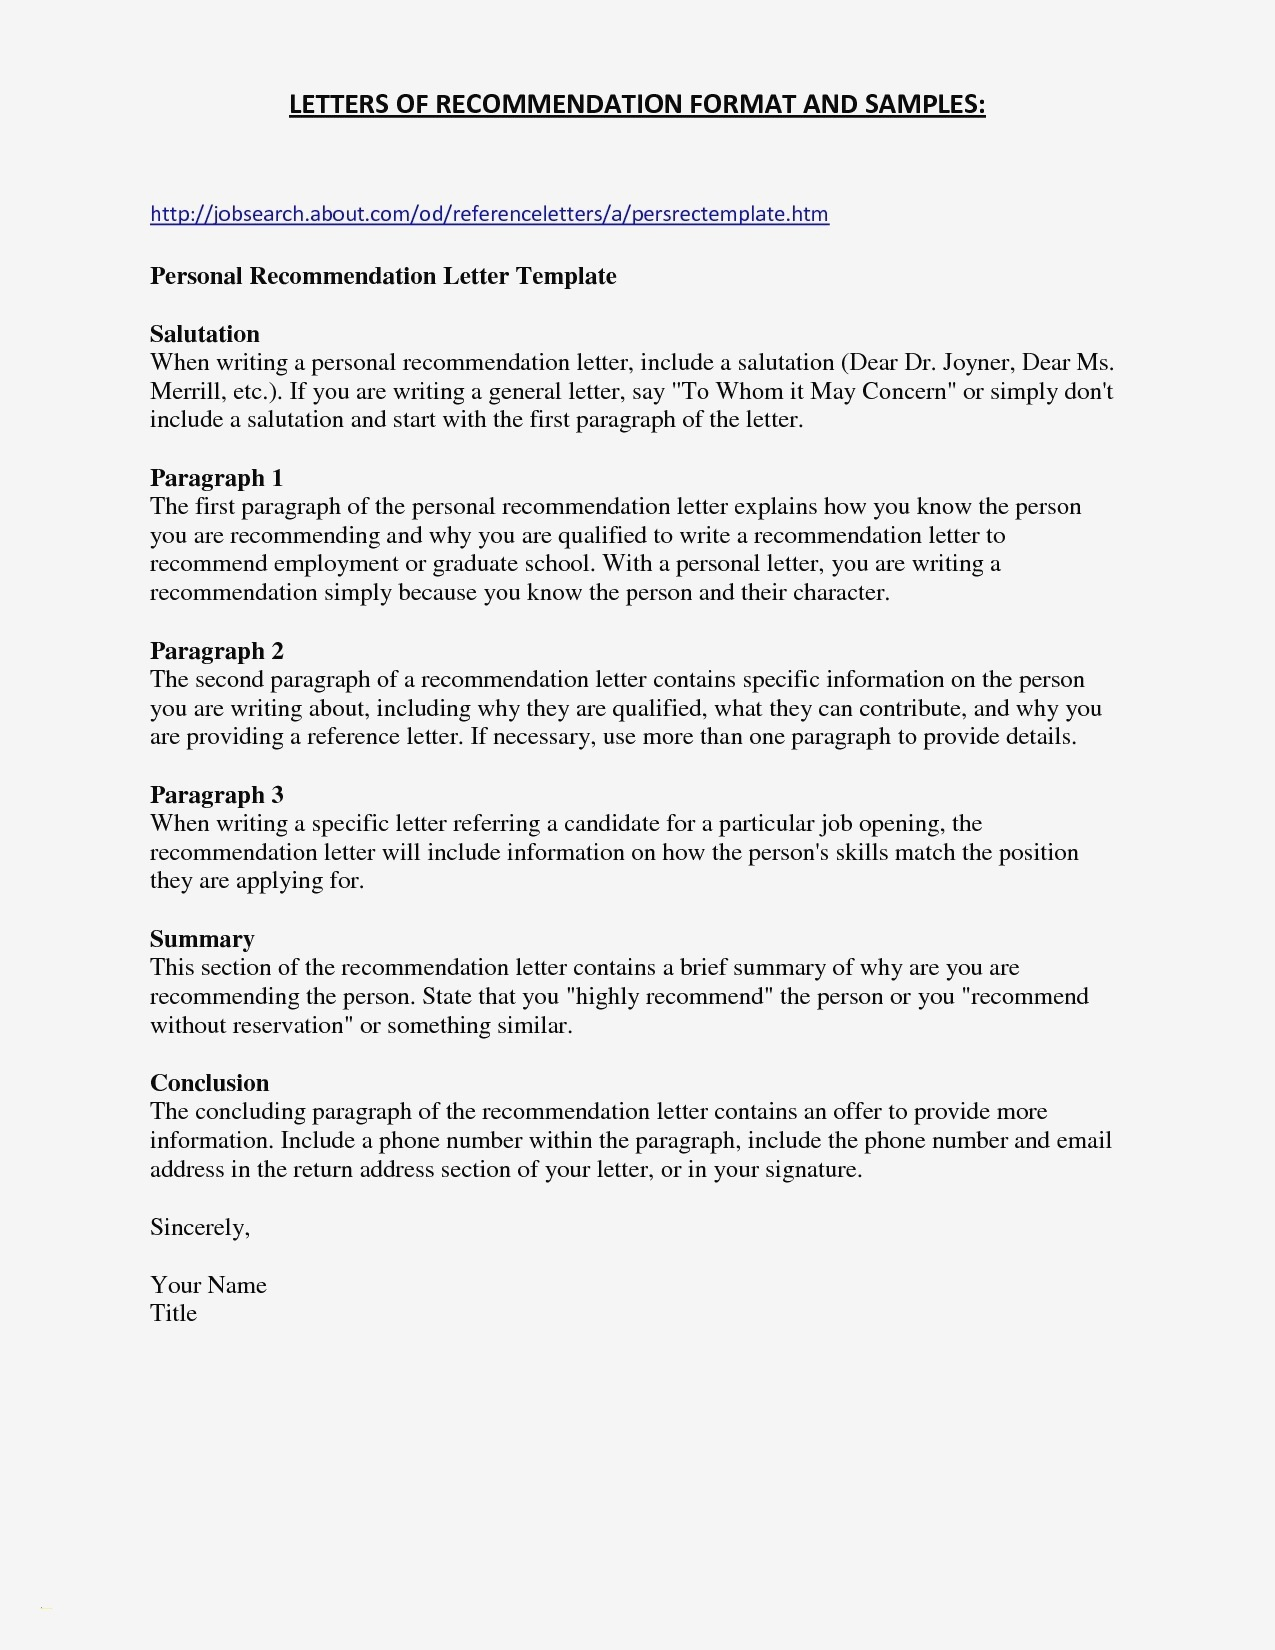 Mit Sloan Resume Template - Mba Application Resume Template New the Proper Harvard Business